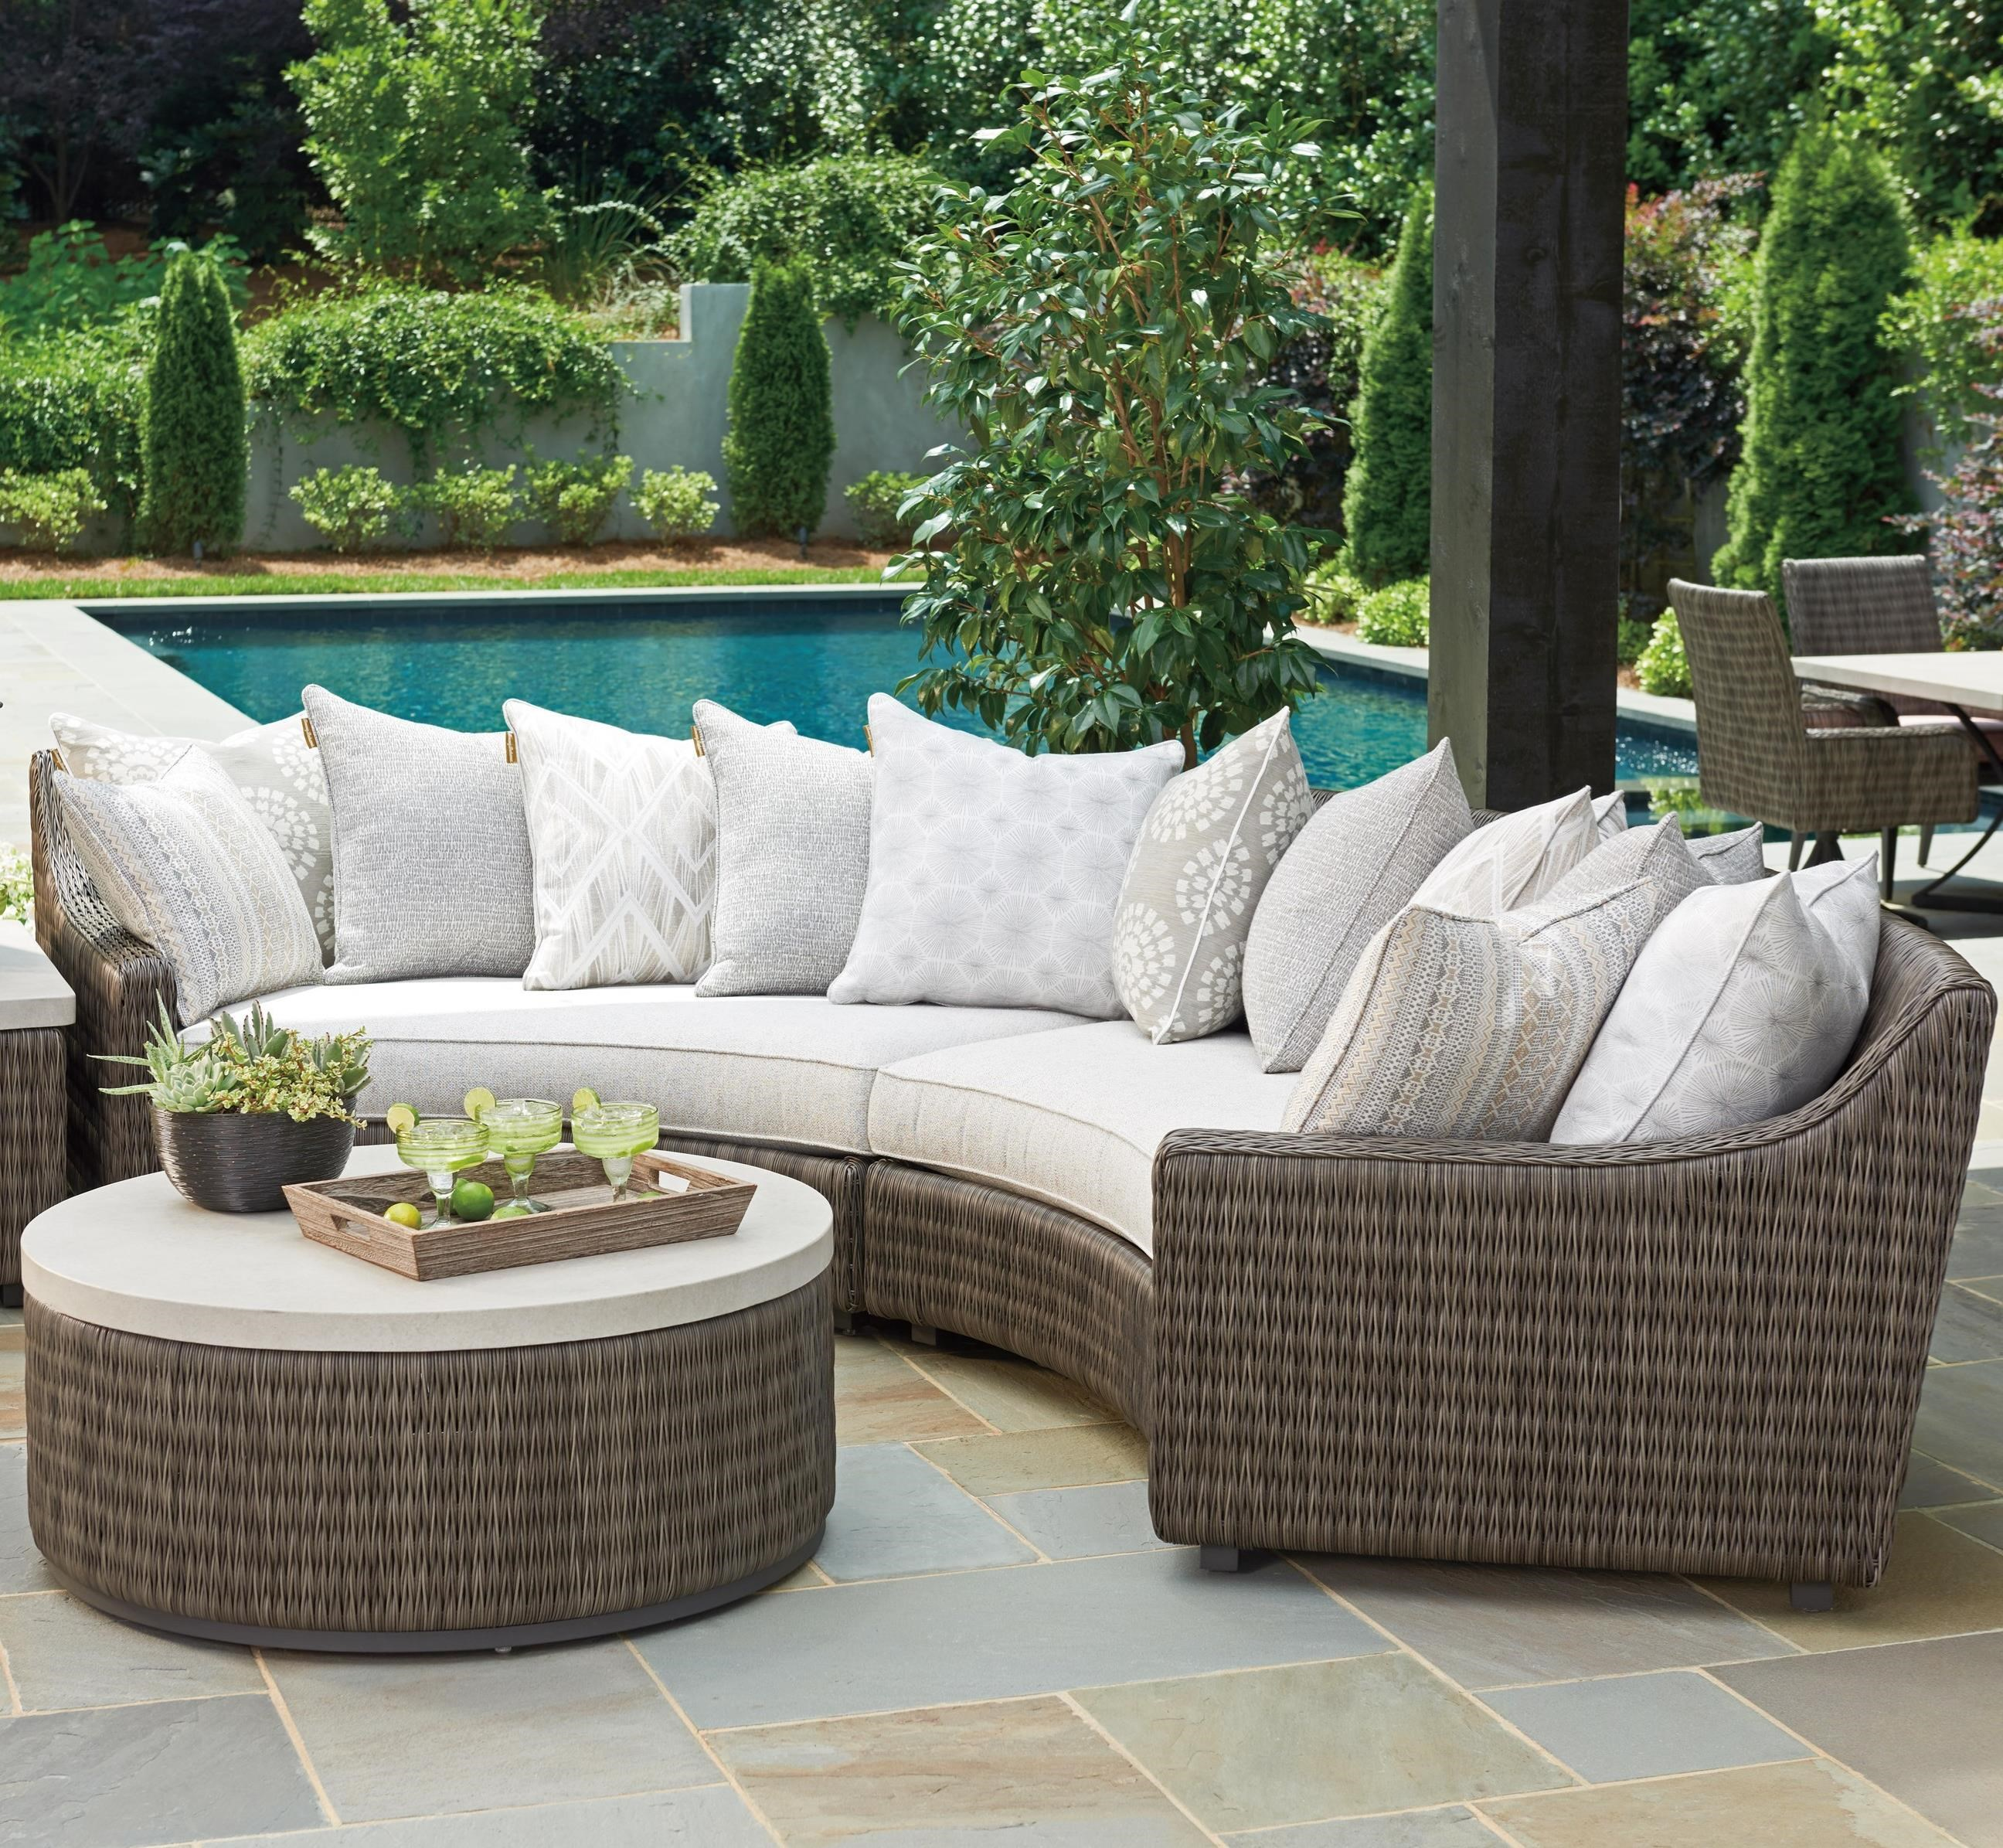 Tommy Bahama Outdoor Living Cypress Point Ocean Terrace 4 Seat Outdoor Curved Sectional Sofa With Weatherproof Cushions And Scatterback Pillows Baer S Furniture Outdoor Sectional Sofa Groups